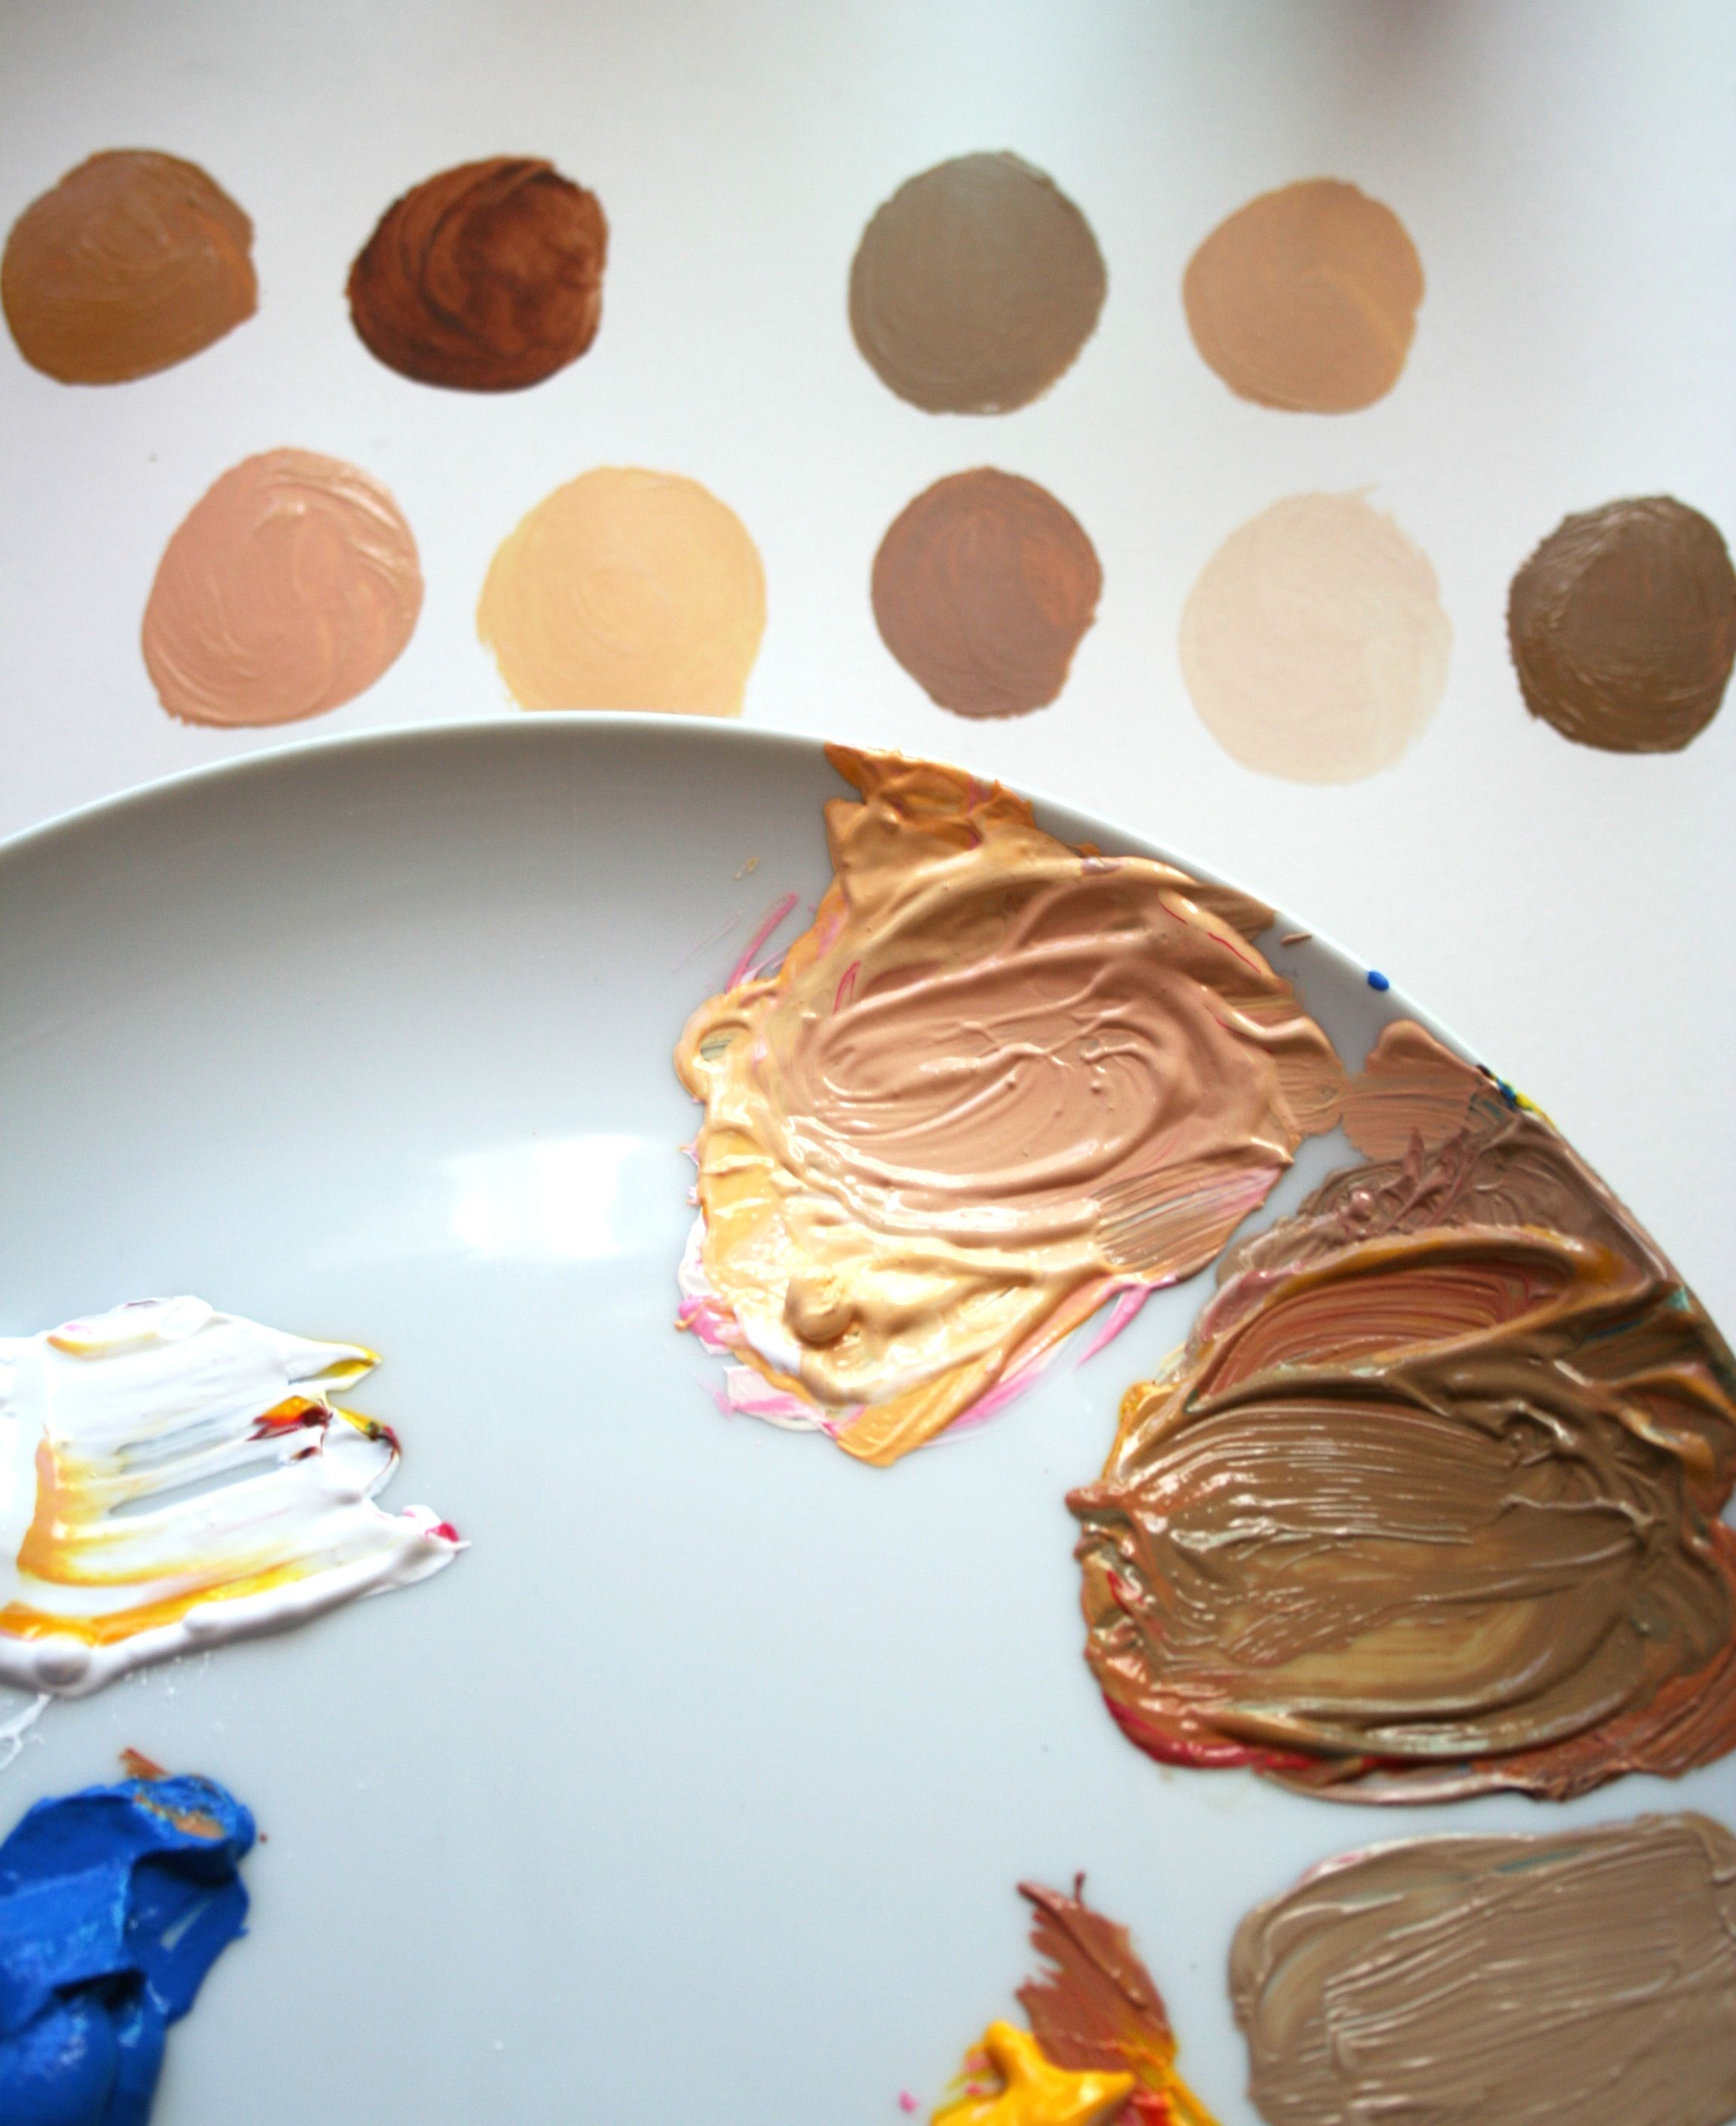 How do you attain lifelike, realistic skin tones in acrylic paint? Learn how to become a mixmaster, using different ratios of the primary colors. On Craftsy!